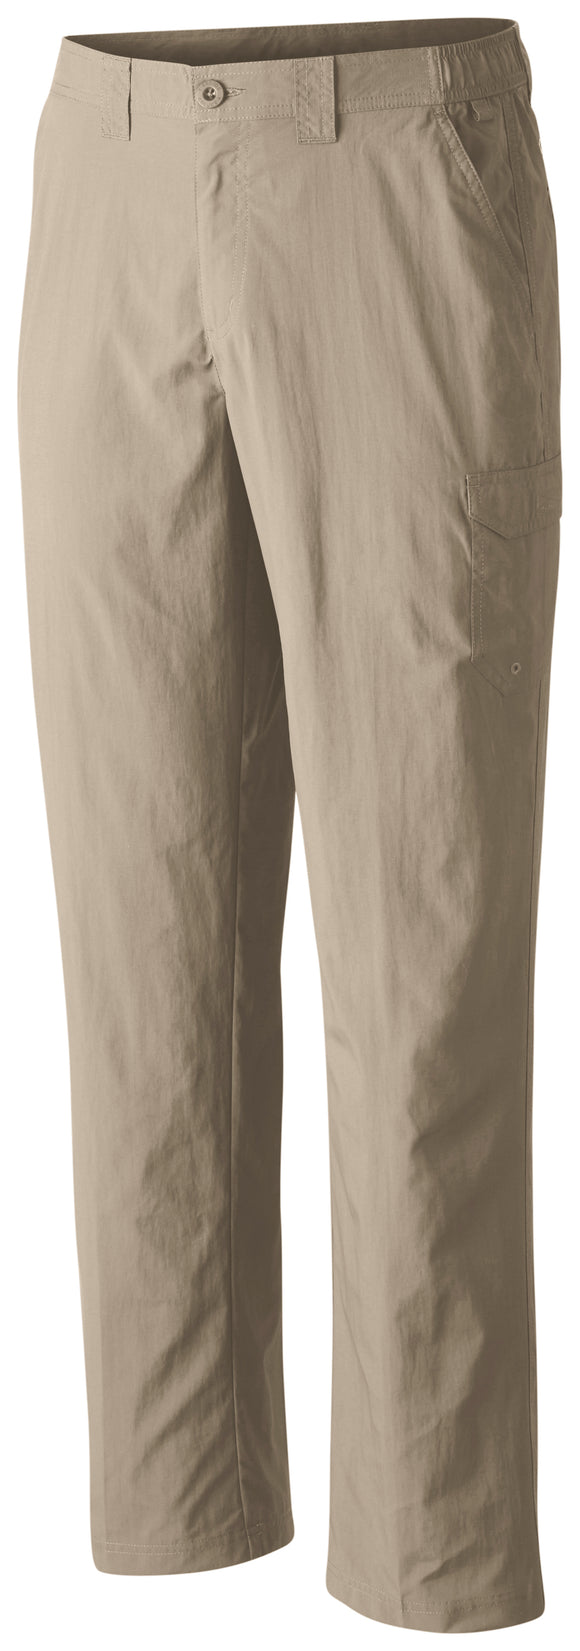 Blood and Guts Pant Fossil / 32 / 30 Bottoms Columbia - Hook 1 Outfitters/Kayak Fishing Gear